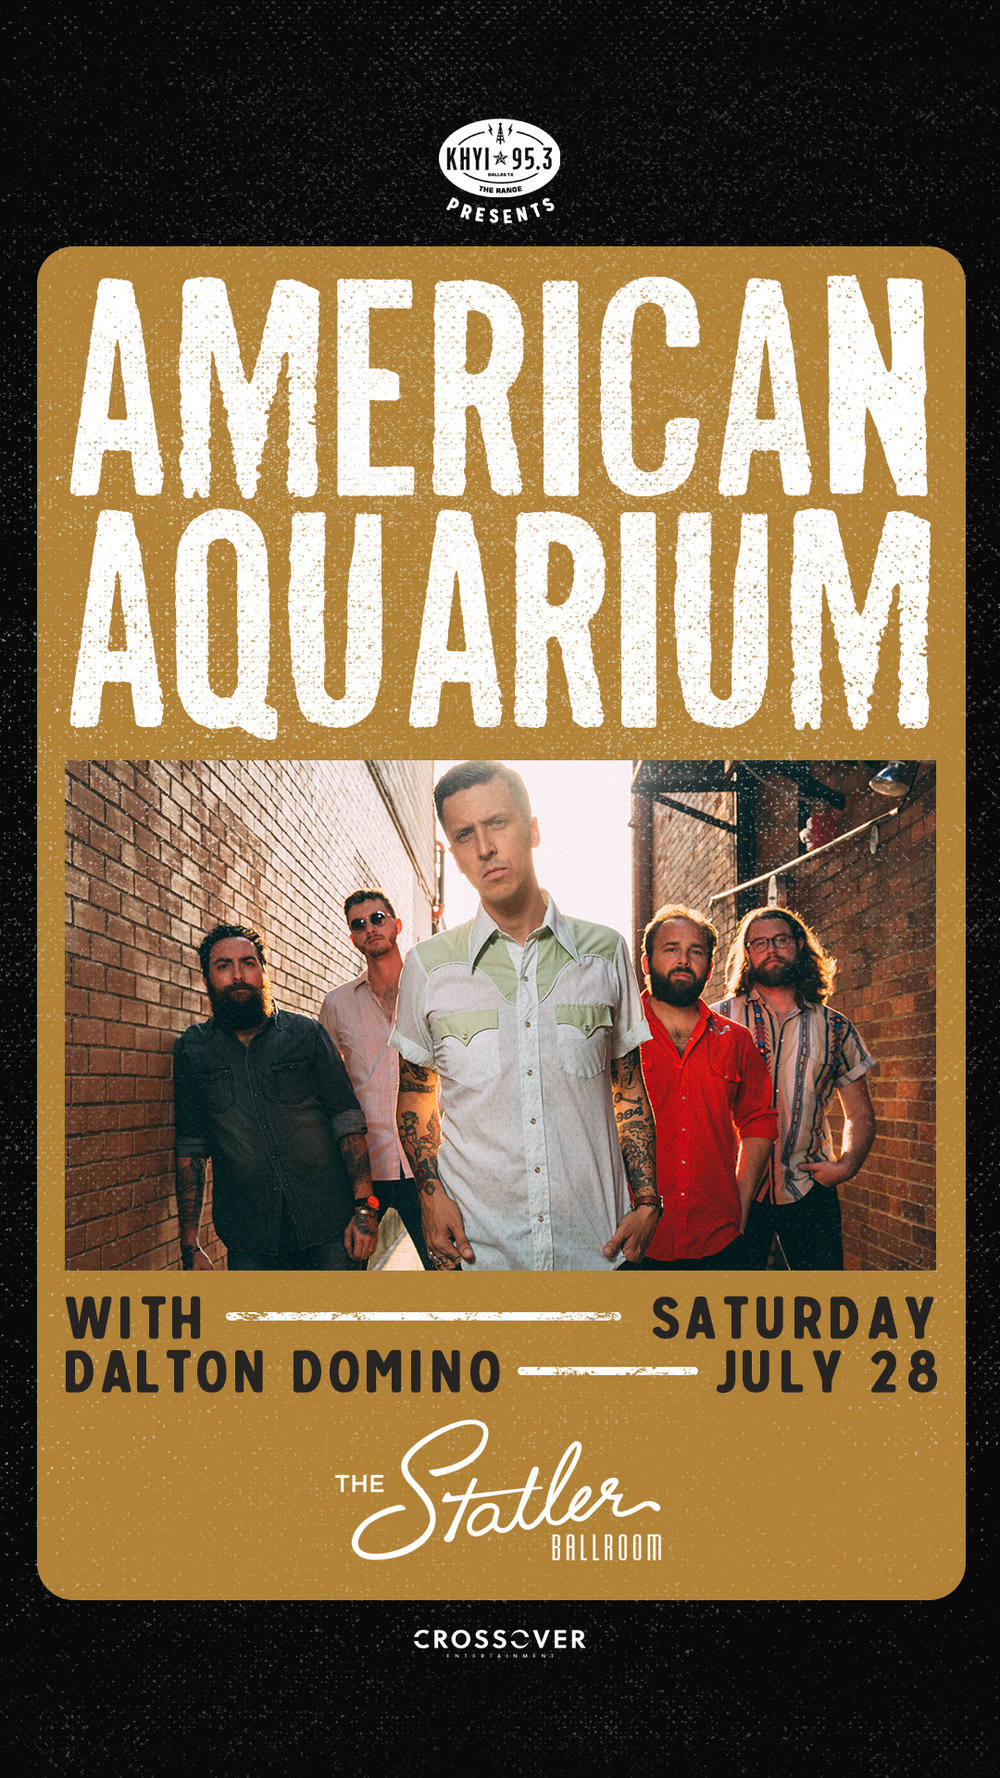 "American Aquarium is excited to announce their seventh studio album, Things Change, out on  New West Records . ""We recorded this album over nine days in Tulsa, OK with Grammy nominated  John Fullbright  in the producer chair and  Wes Sharon  (Turnpike Troubadours, Parker Millsap) sitting behind the knobs. It was mixed by  Ryan Hewitt  (Johnny Cash, Red Hot Chili Peppers, Avett Brothers) in Nashville,TN and mastered by  Dave Collins  (Bruce Springsteen, Weezer, Flogging Molly) in Los Angeles,CA."" Don't miss the album release show at The Statler Ballroom.  Get tickets ."